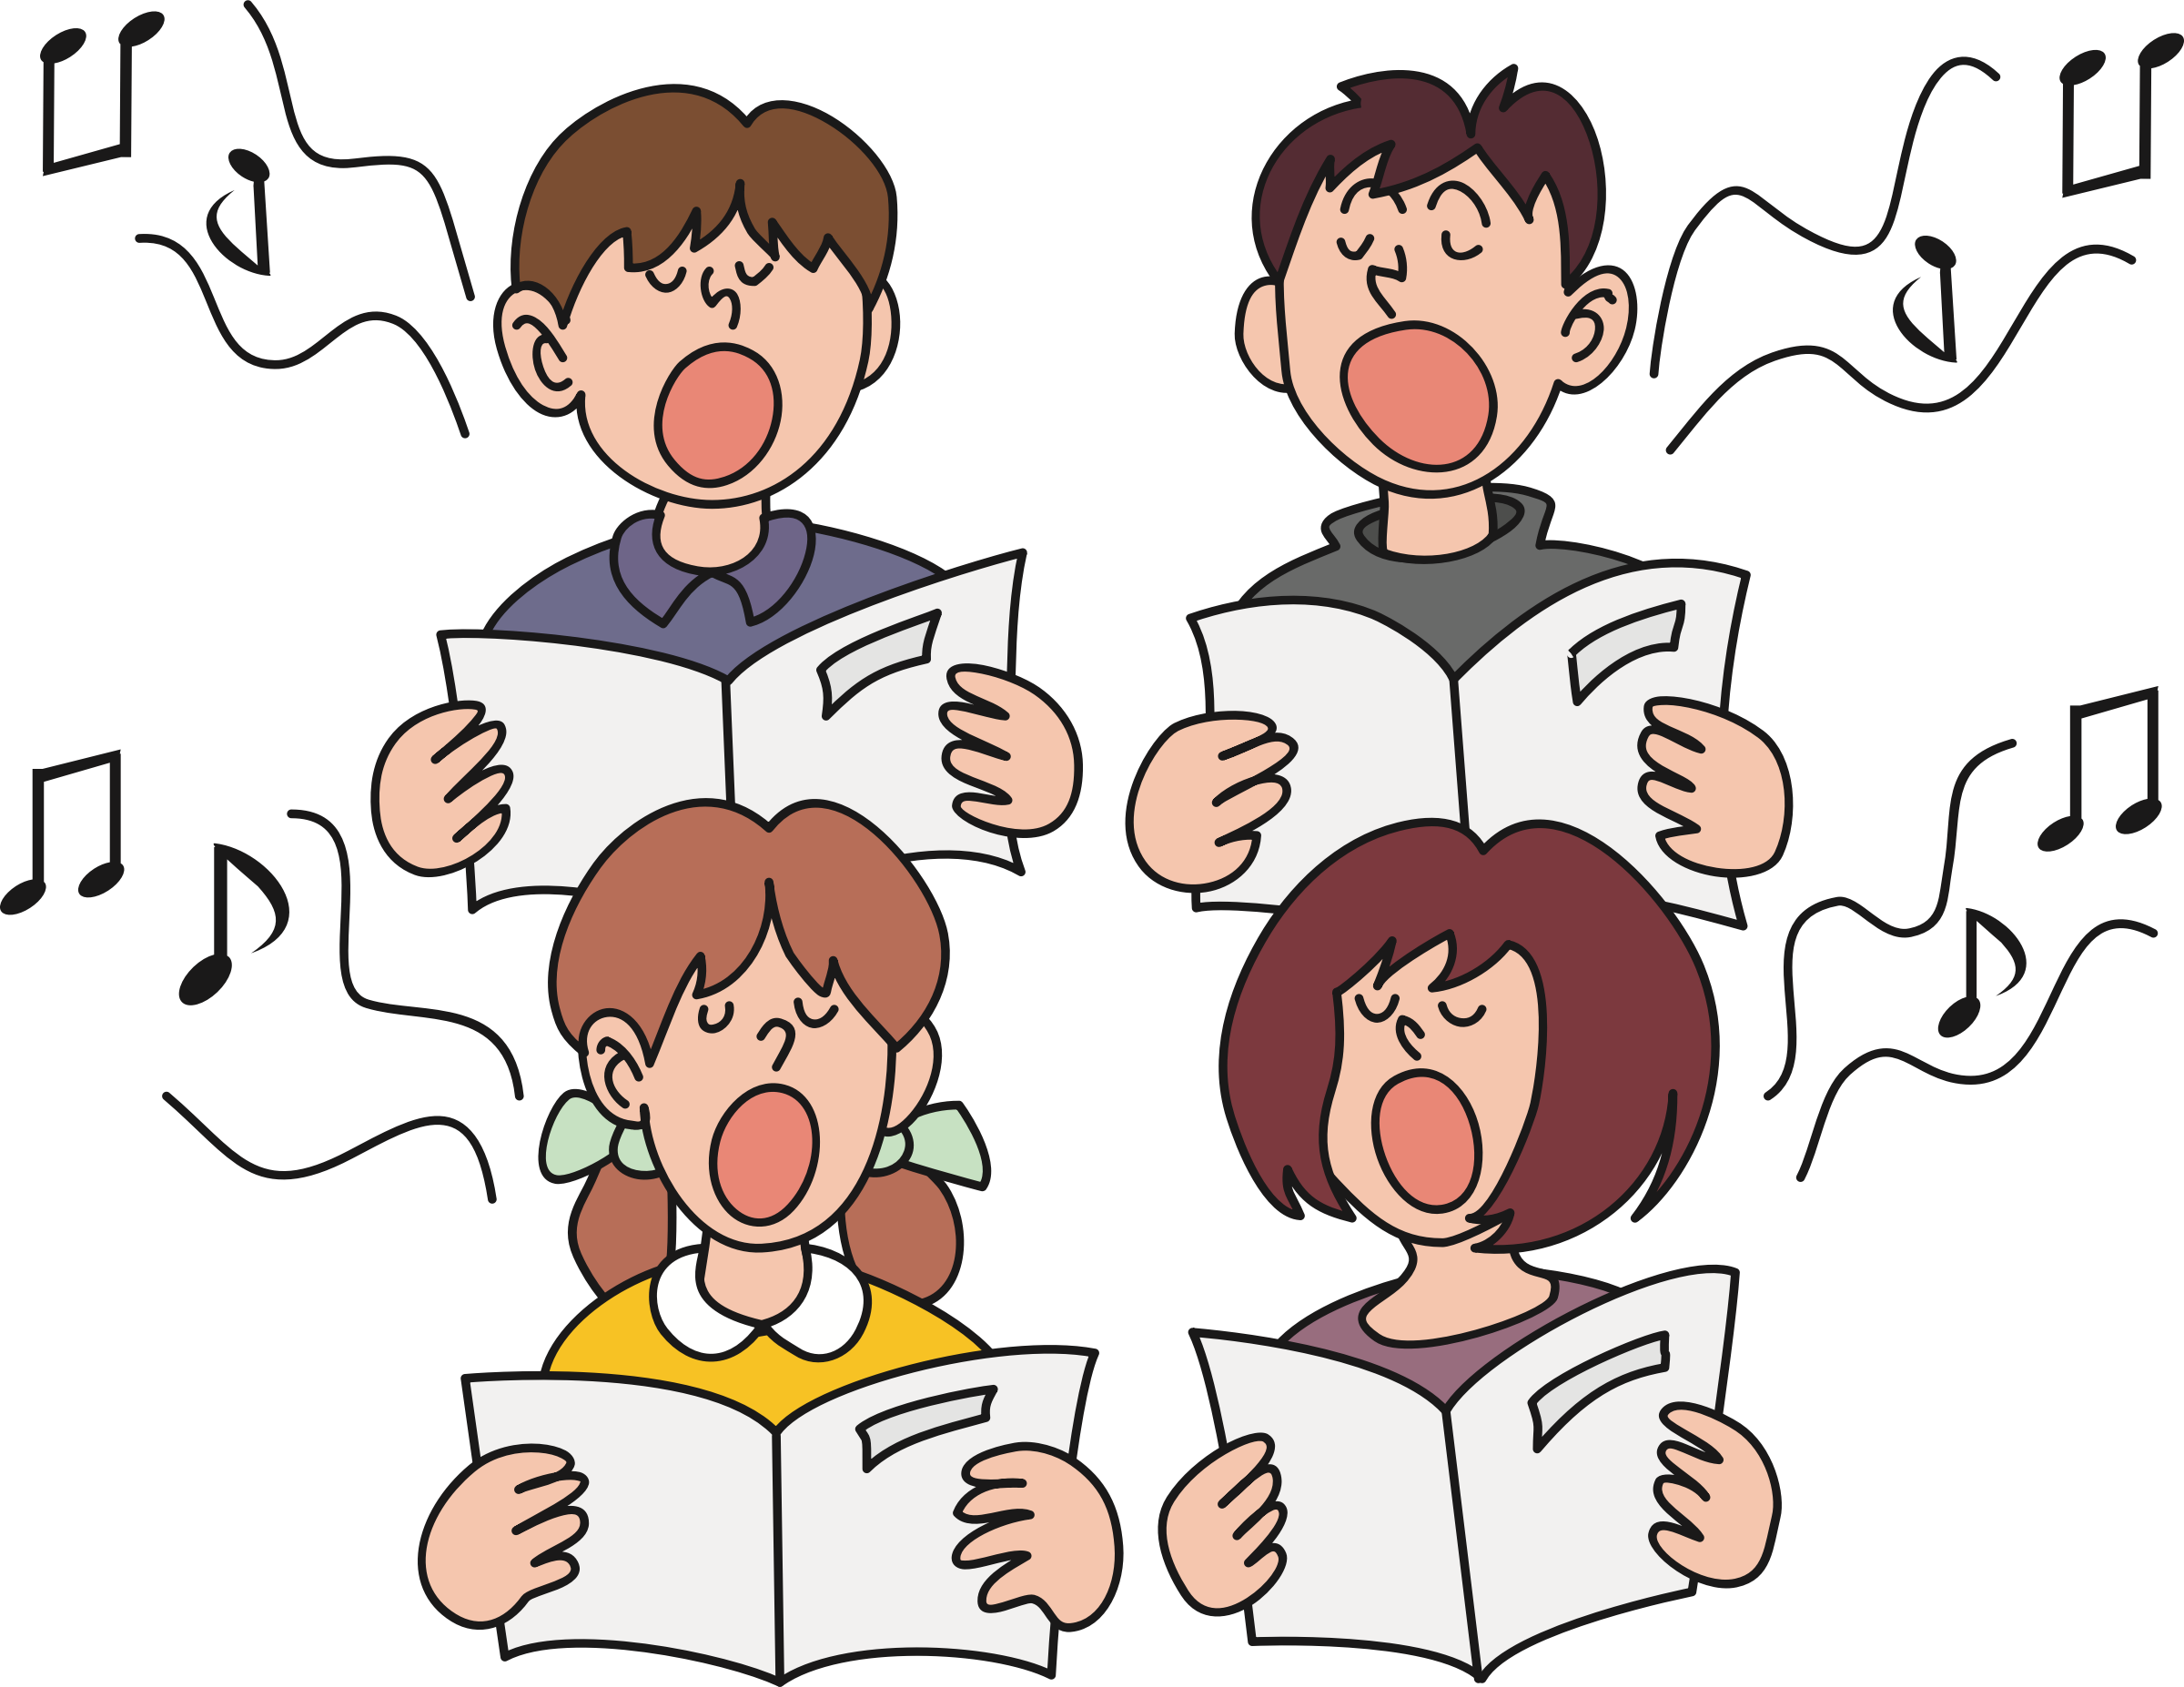 jpg royalty free download Sing clipart. Children singing big image.